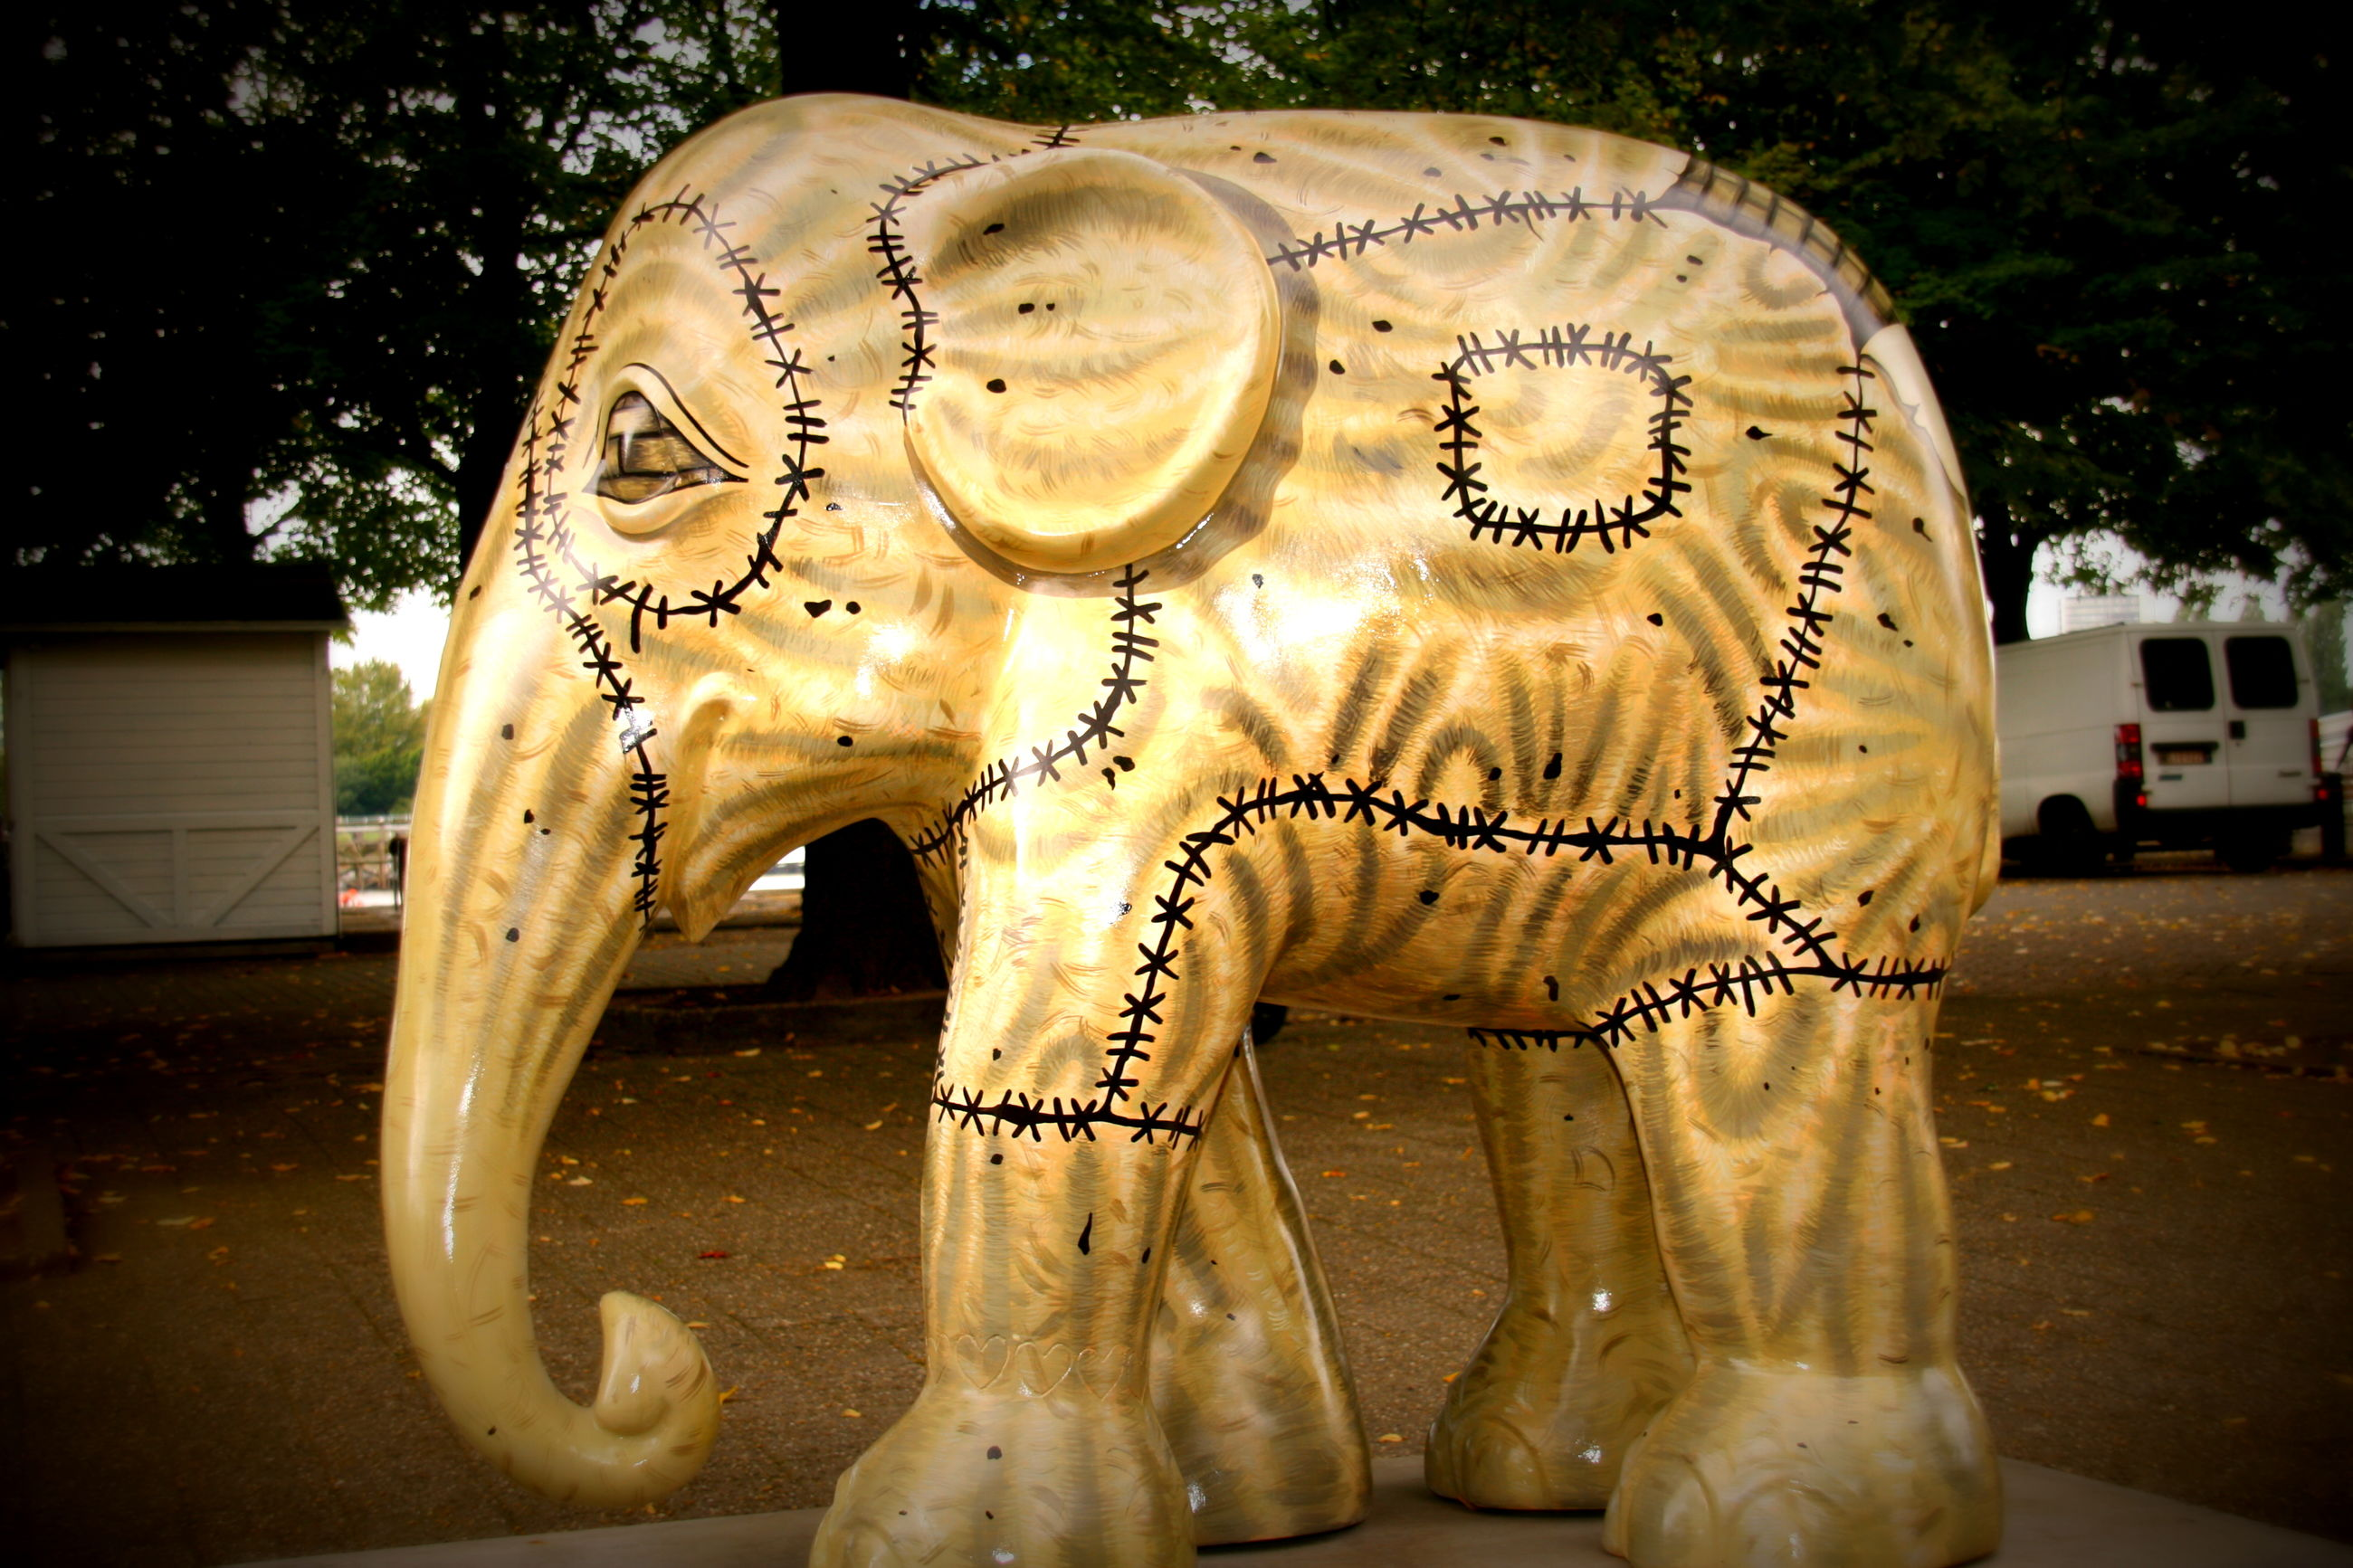 art and craft, art, creativity, text, close-up, human representation, circle, animal representation, indoors, no people, western script, day, sculpture, carving - craft product, communication, tree, shape